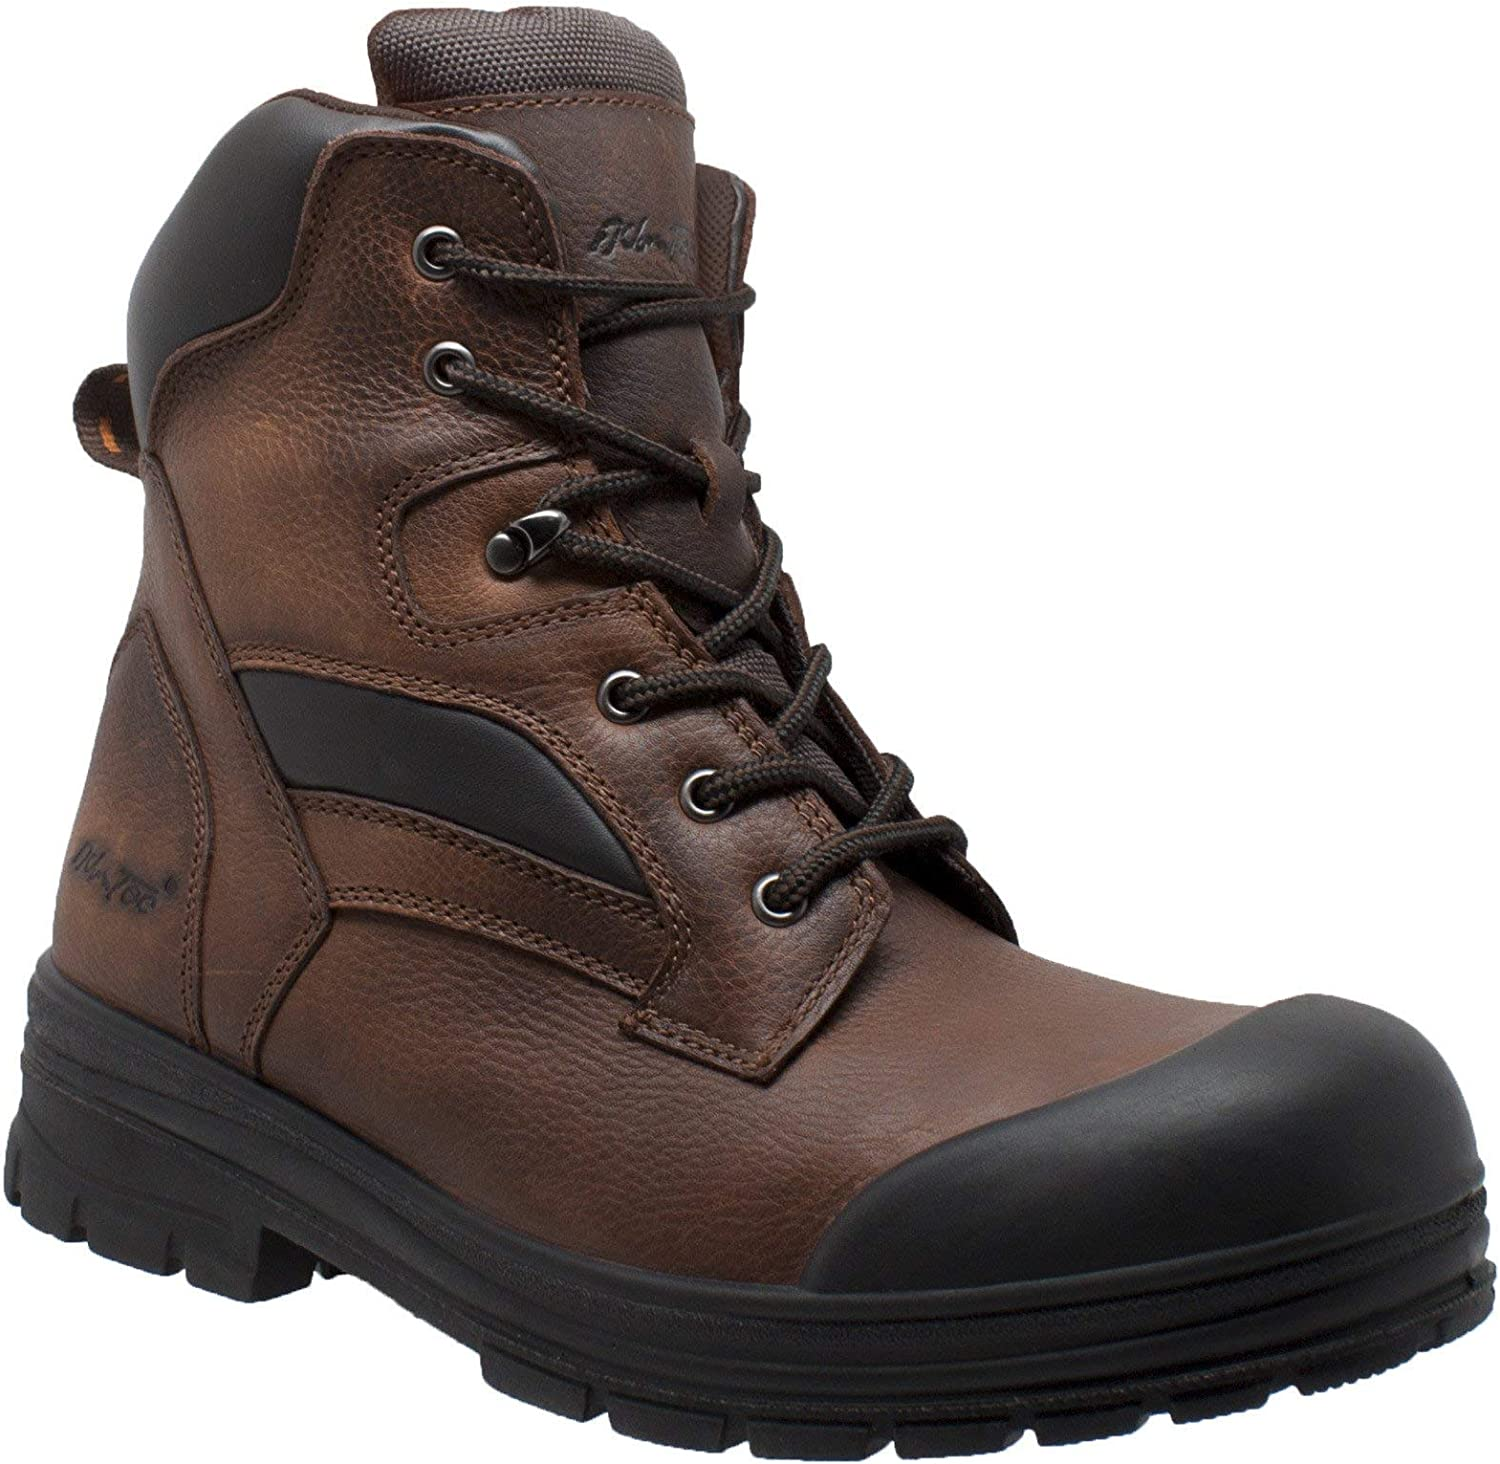 Ad Tec Men's 8in Waterproof Grain Leather Certified Work Boots for Men - Composite Toe, Slip Resistant Outsole with Rubber Toe Cap, Brown